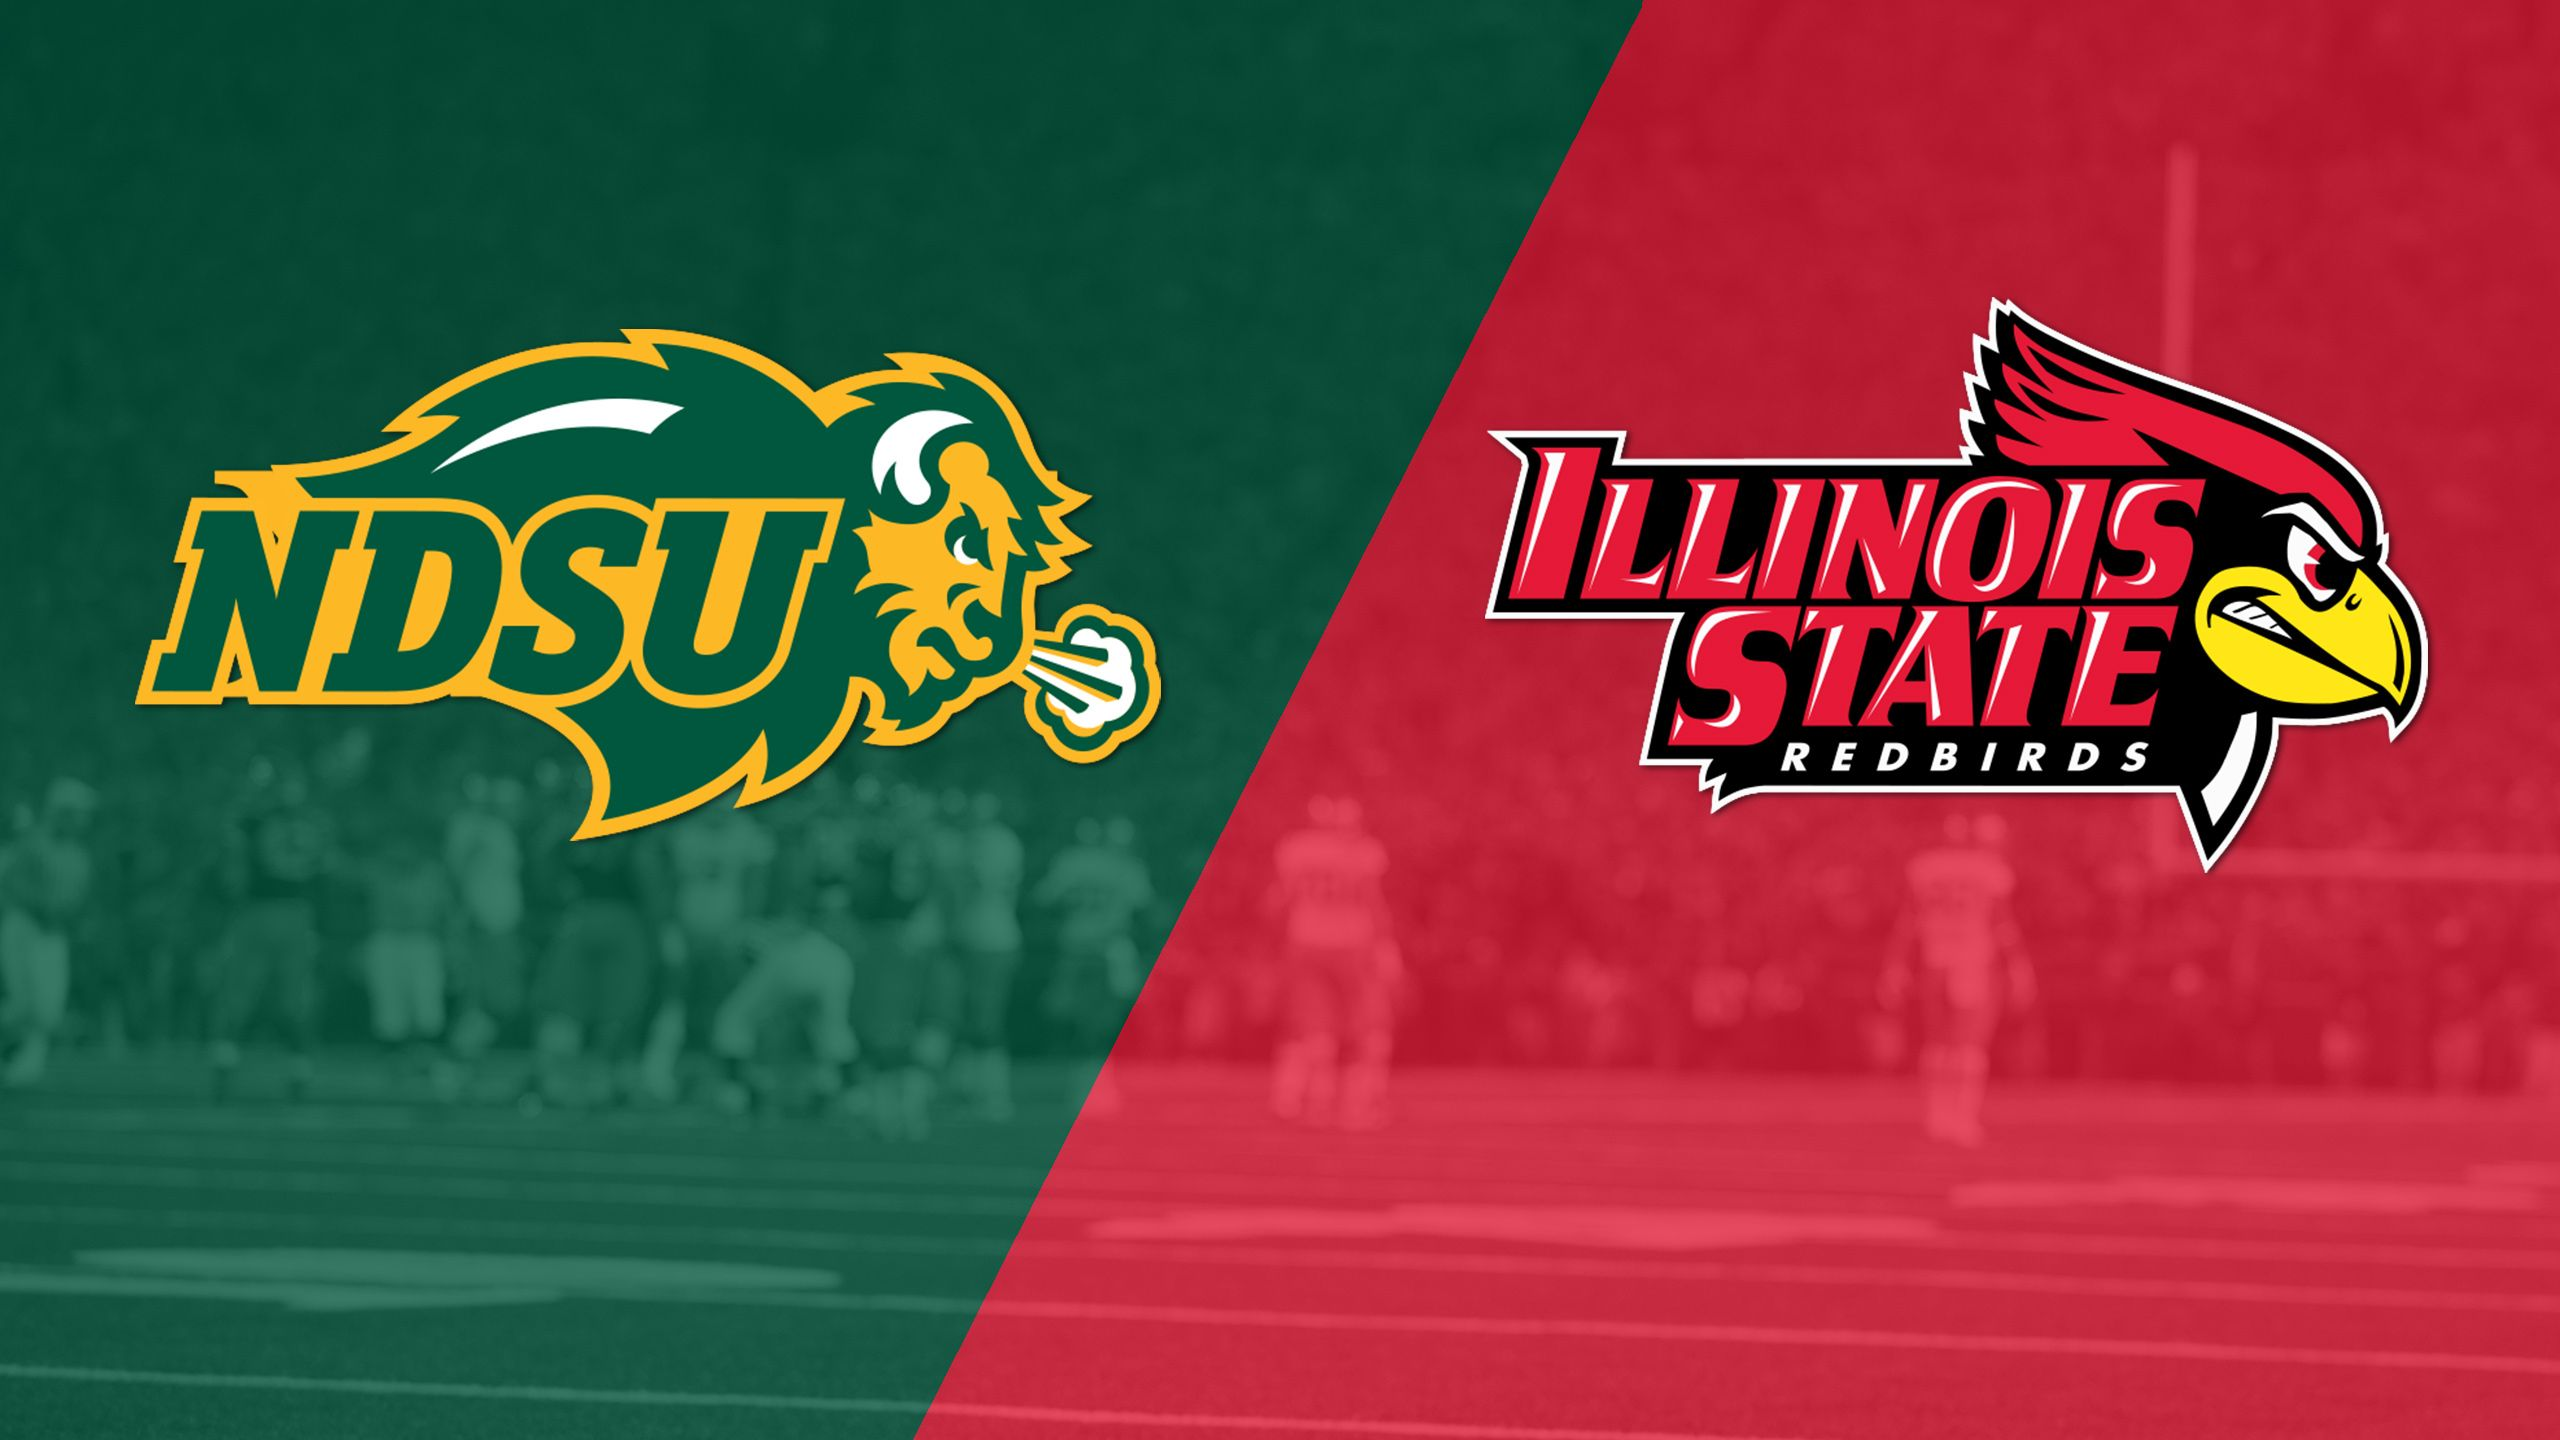 North Dakota State vs. Illinois State (Football)